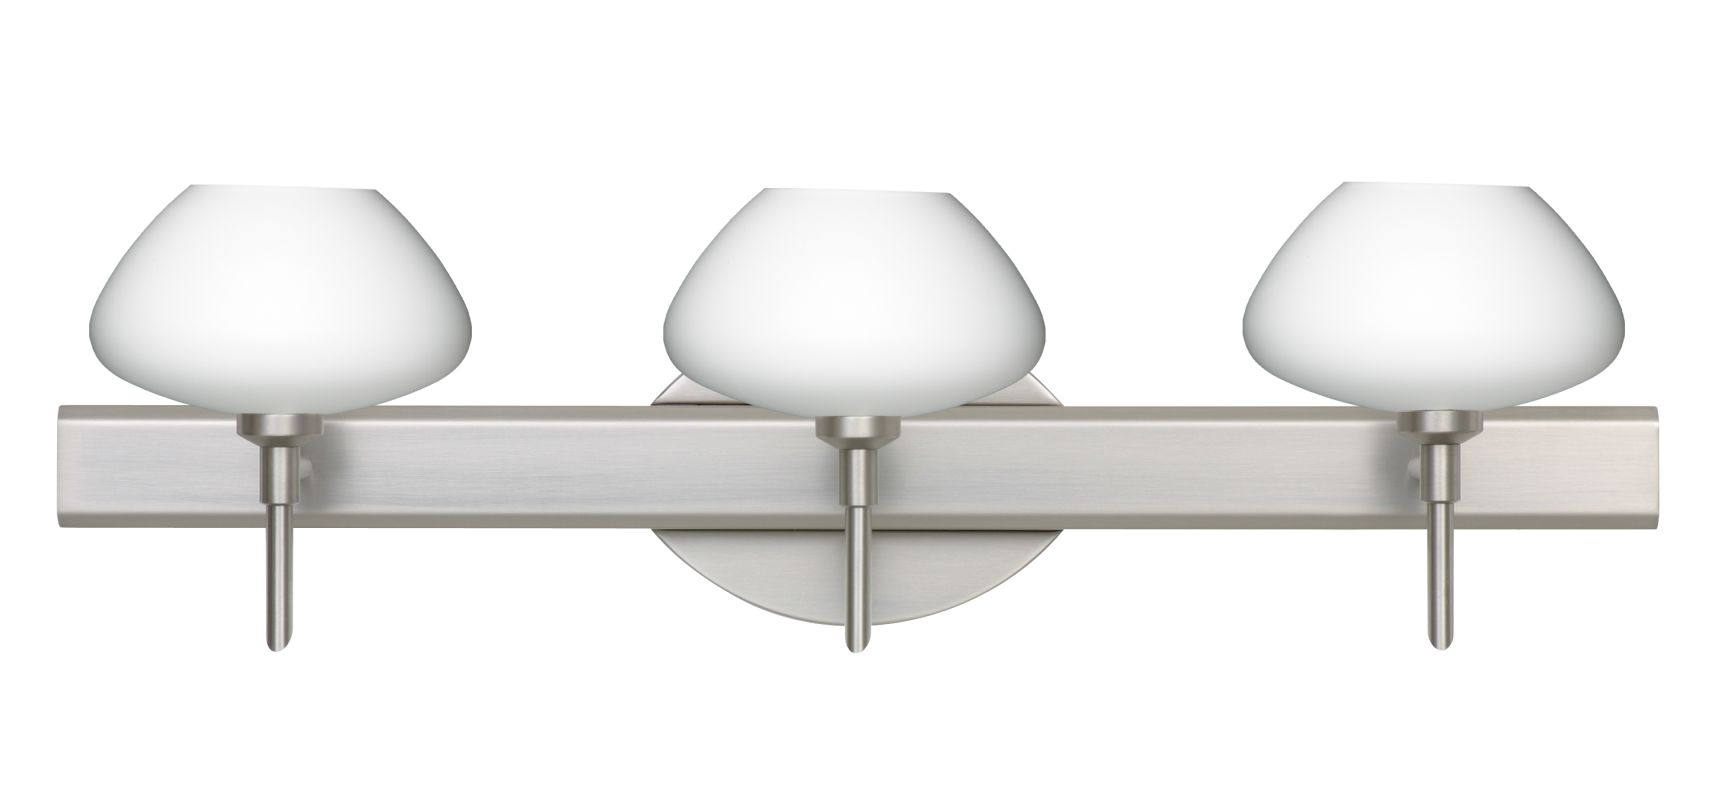 Besa Lighting 3SW-541007 Peri 3 Light Reversible Halogen Bathroom